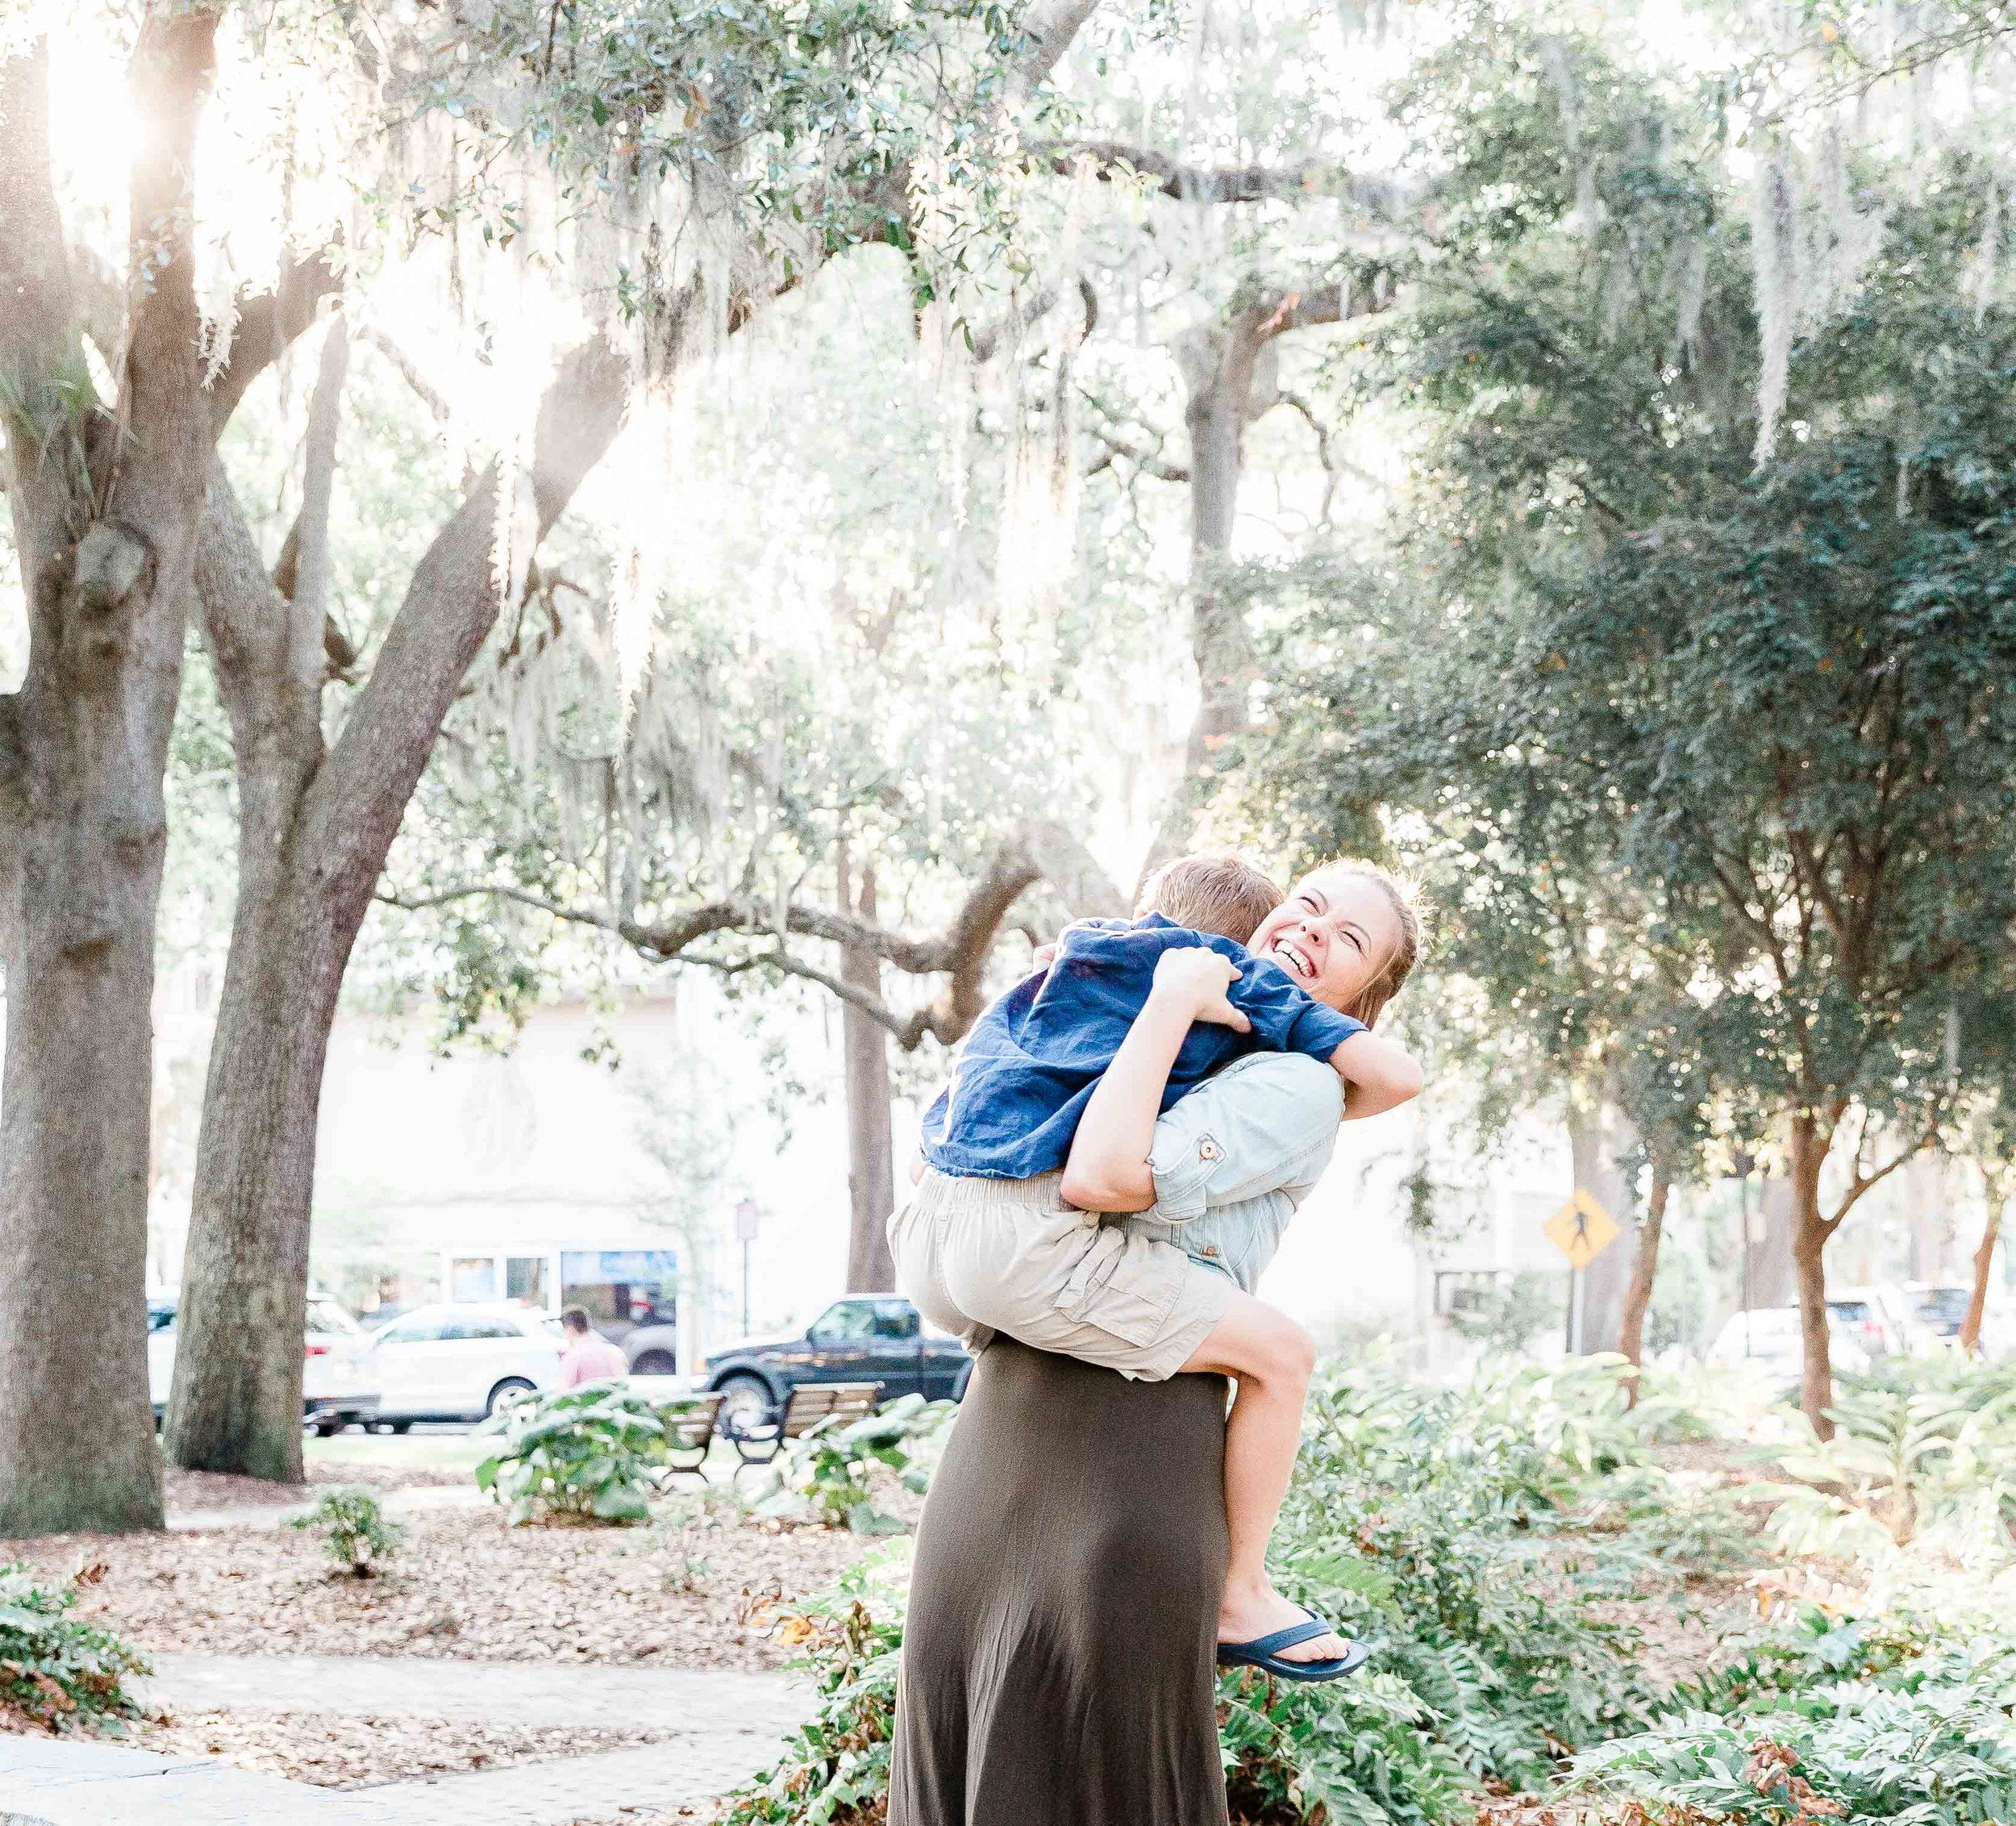 20190526Georgia-Savannah-lafayette square-brittany sims mothers day session12.jpg